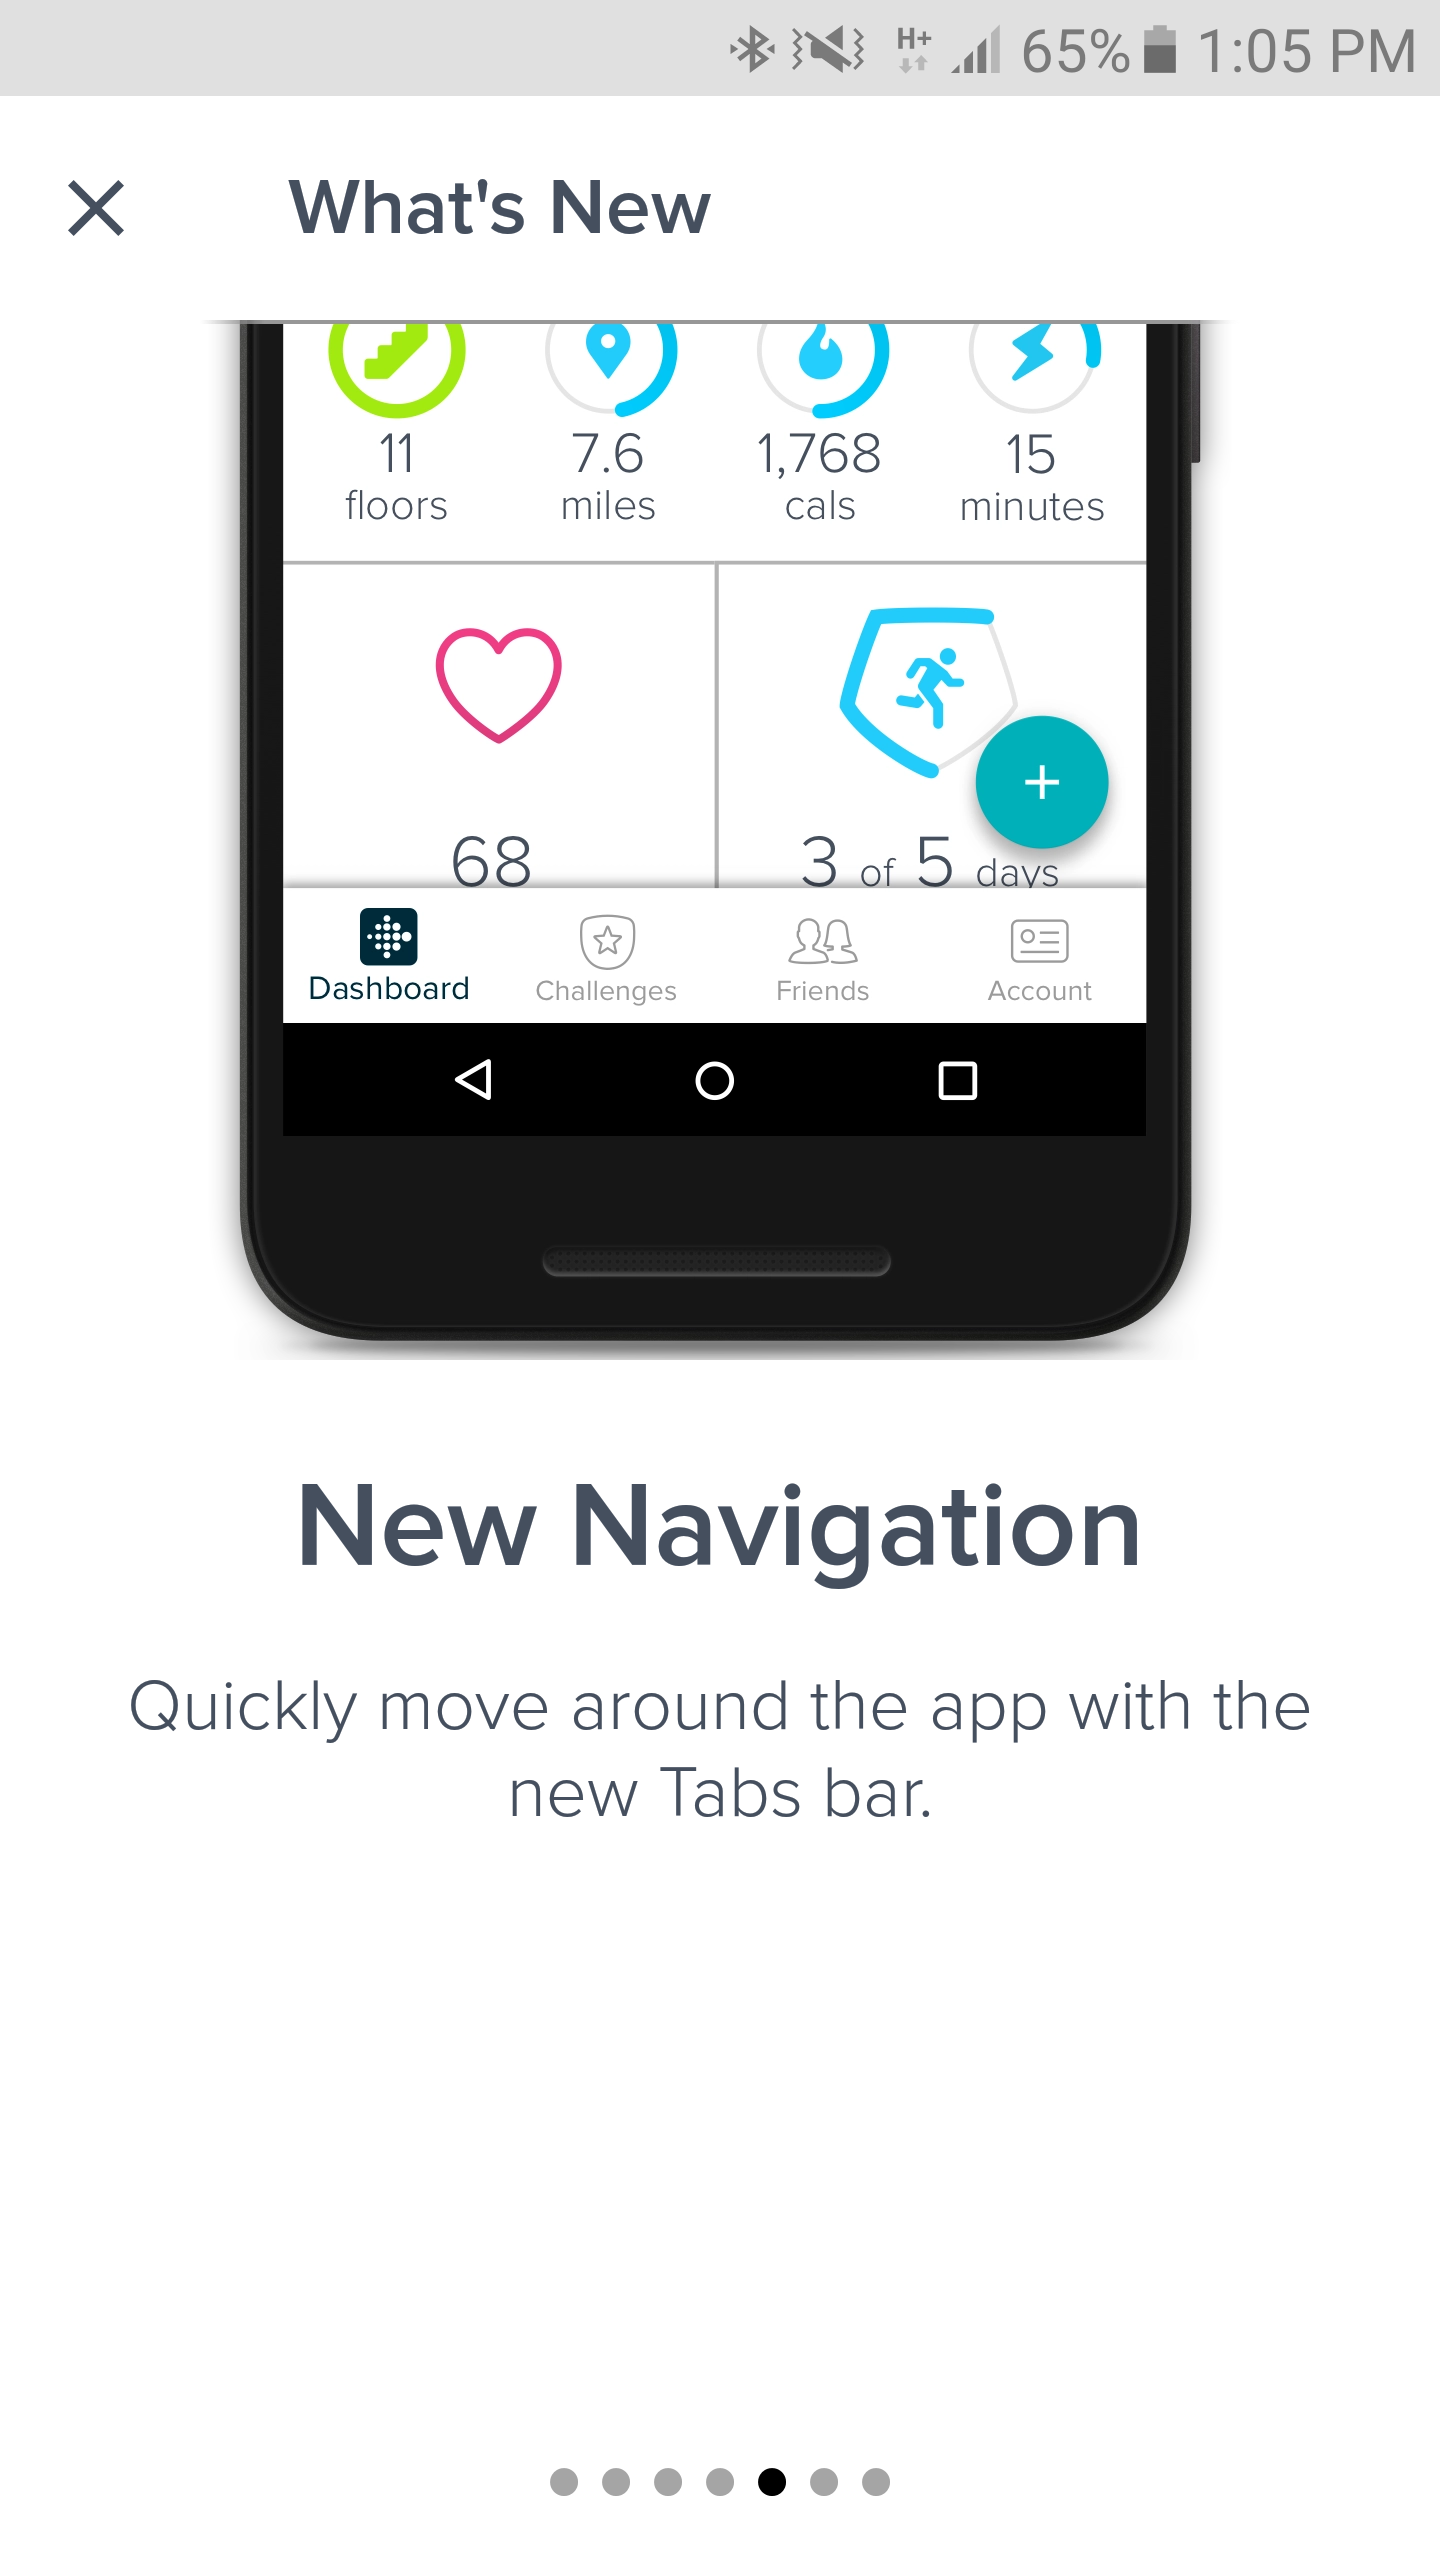 Fitbit's new Dashboard is available for preview in the